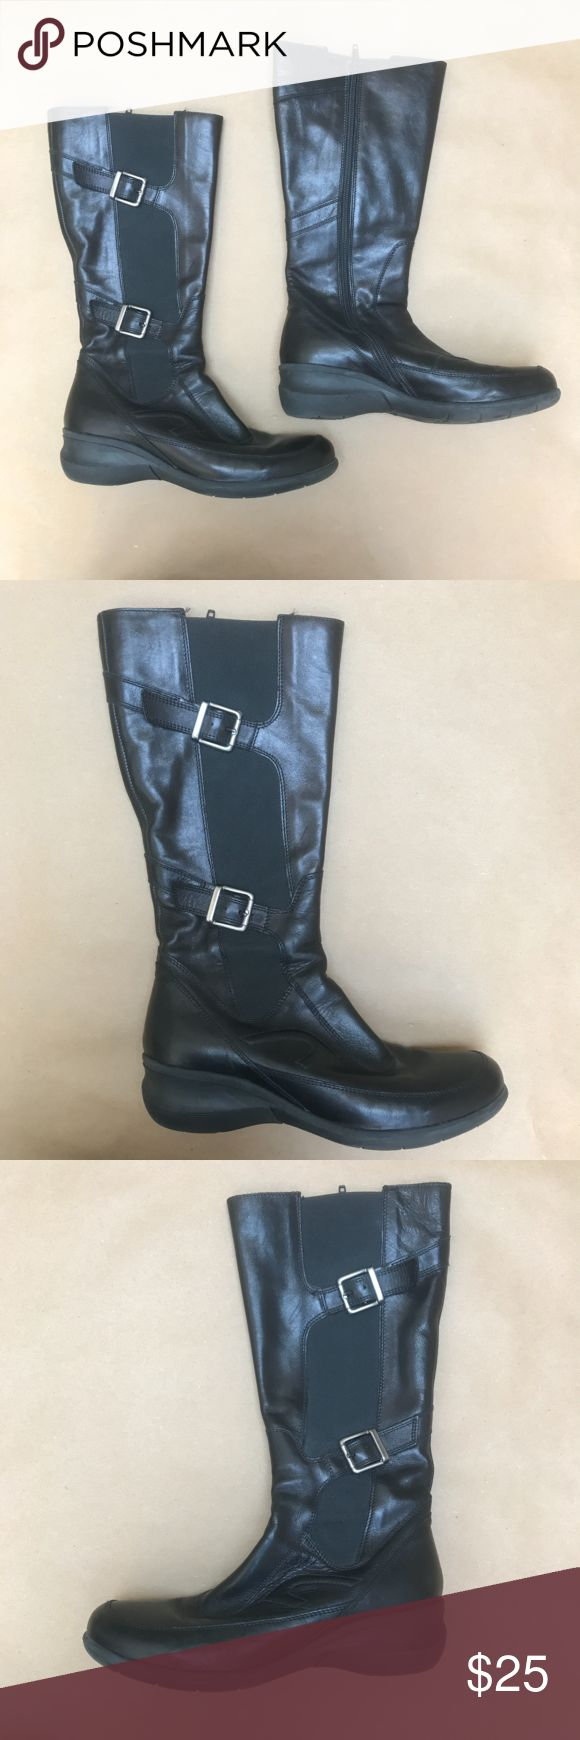 """Italian Black Leather Moto Boots Ciao! Bought new while traveling through Italy. Although not frequently worn, these show normal wear (e.g. creases). These are black leather tall boots made in Italy by Frau. Zipper. Silver buckles. 14"""" tall (from heel to top of boot). Top of boot measures 7"""" wide and narrows down to 5"""". Very comfortable. Please examine photos closely and reach out with questions before committing to purchase. Thx! Frau Shoes Combat & Moto Boots"""